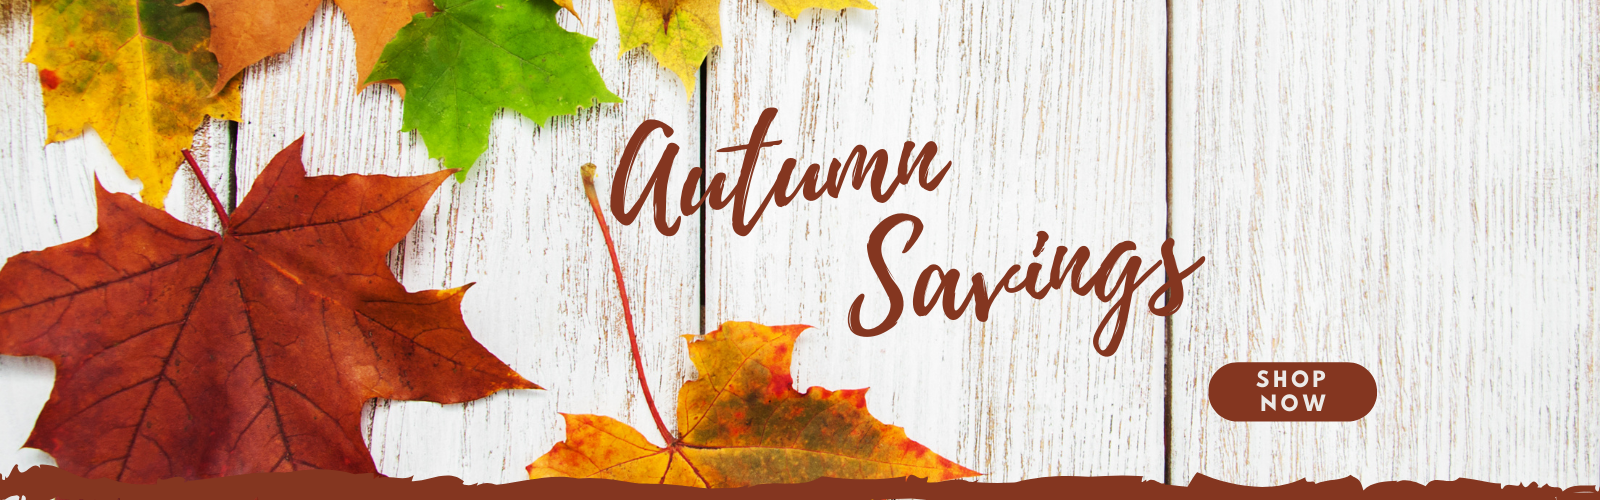 Autumn Savings Shop Now Oct 10th 2020